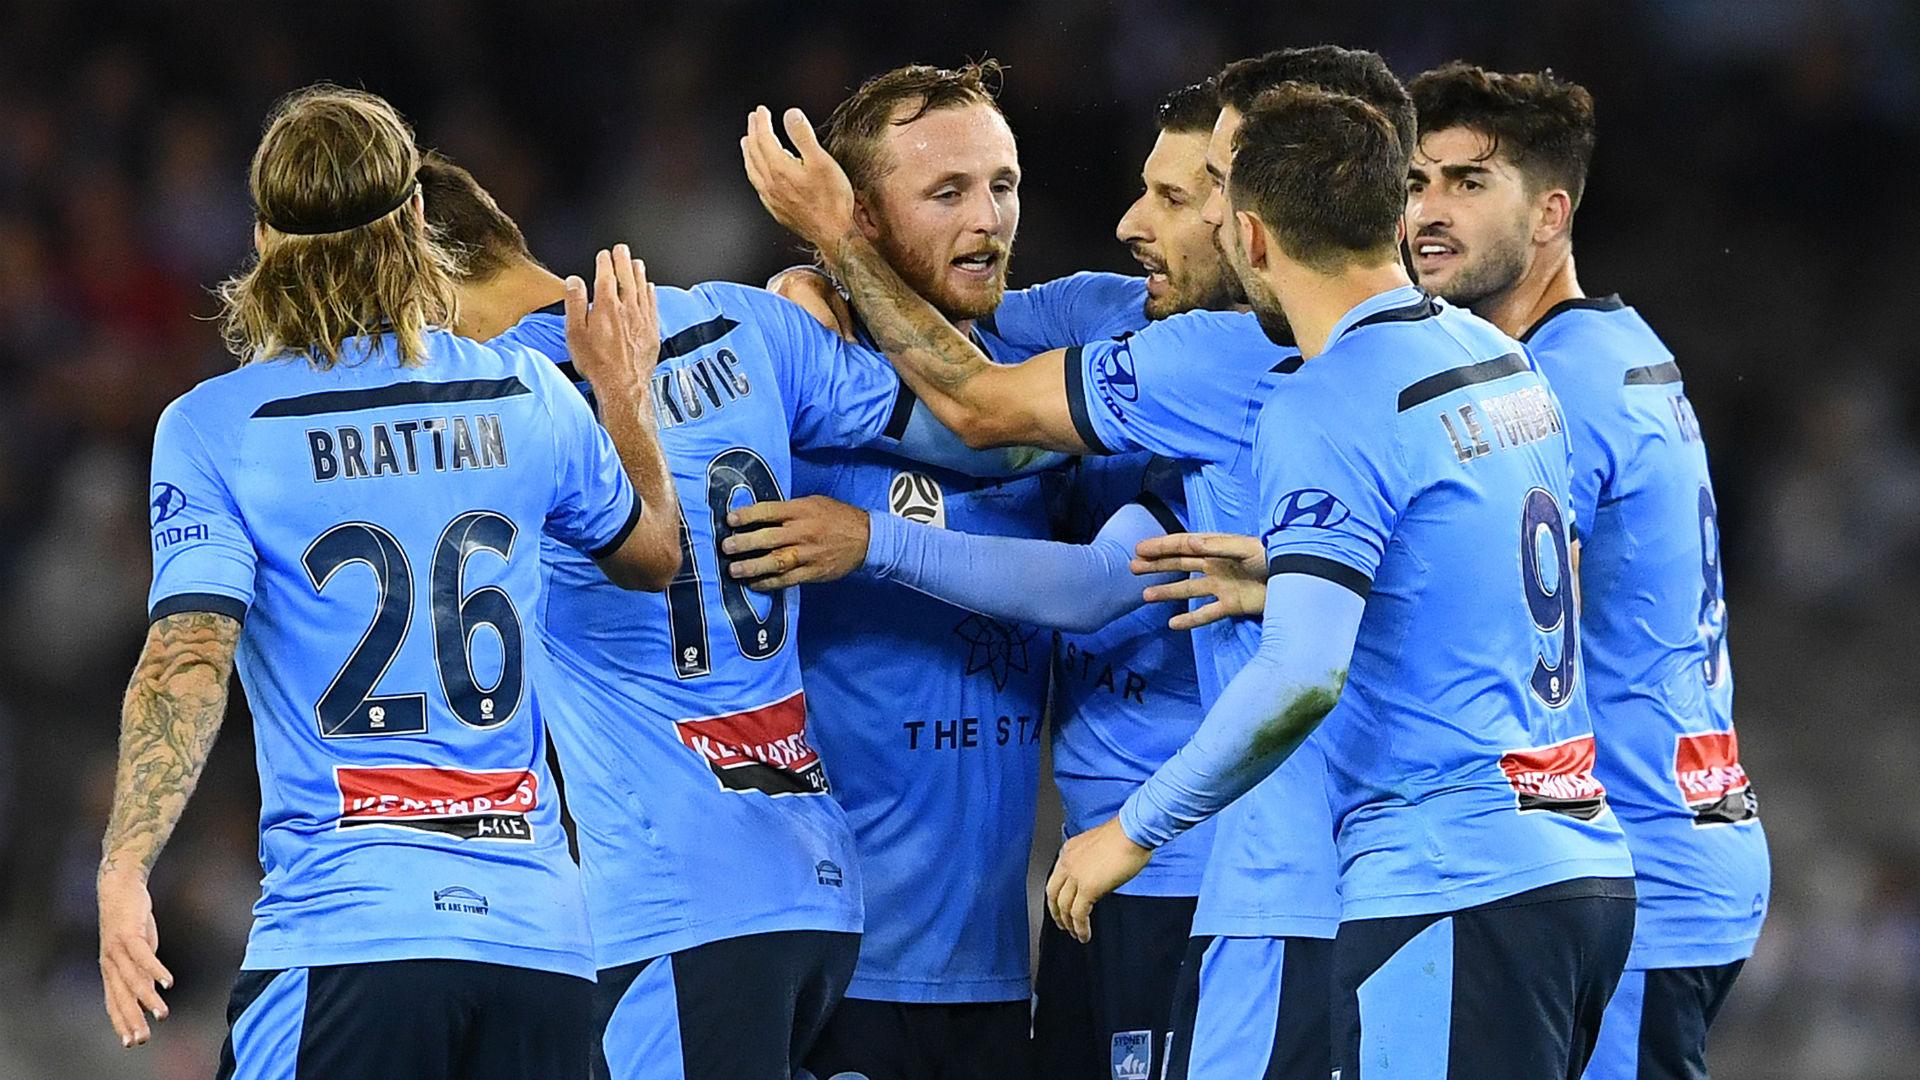 A-League: The importance of round one ahead of season opener